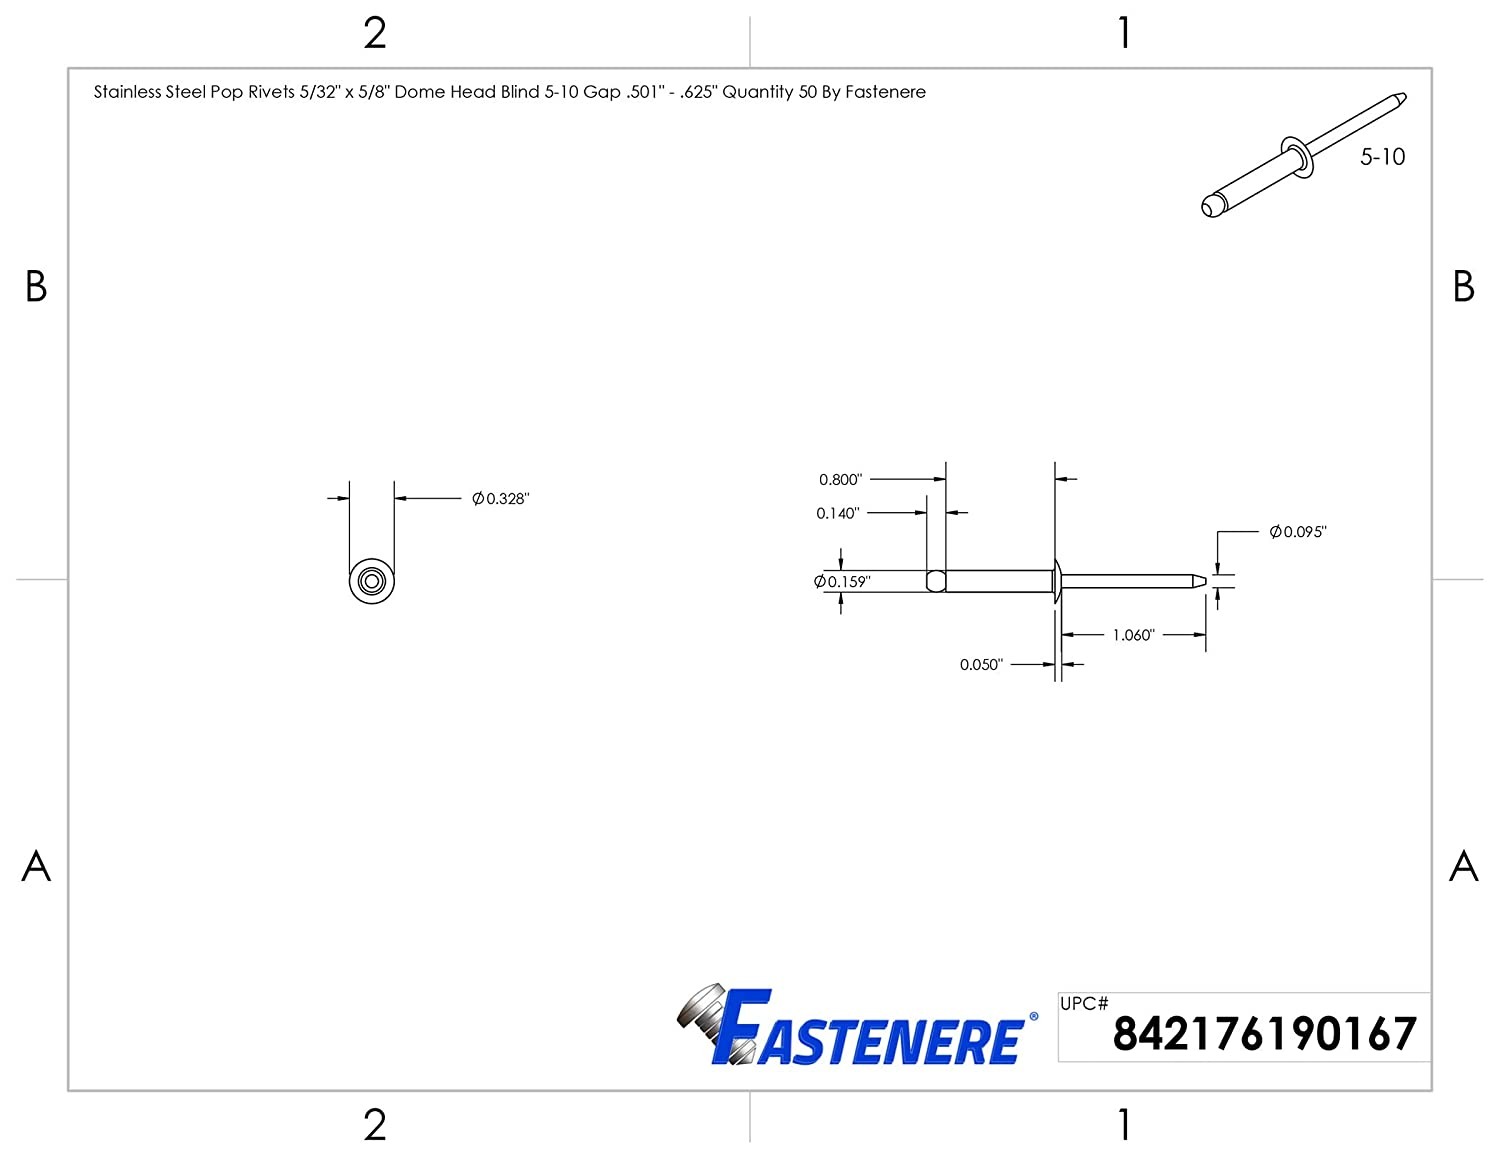 .375 Quantity 25 by Fastenere Stainless Steel Pop Rivets 1//4 x 3//8 Dome Head Blind 8-6 Gap .251